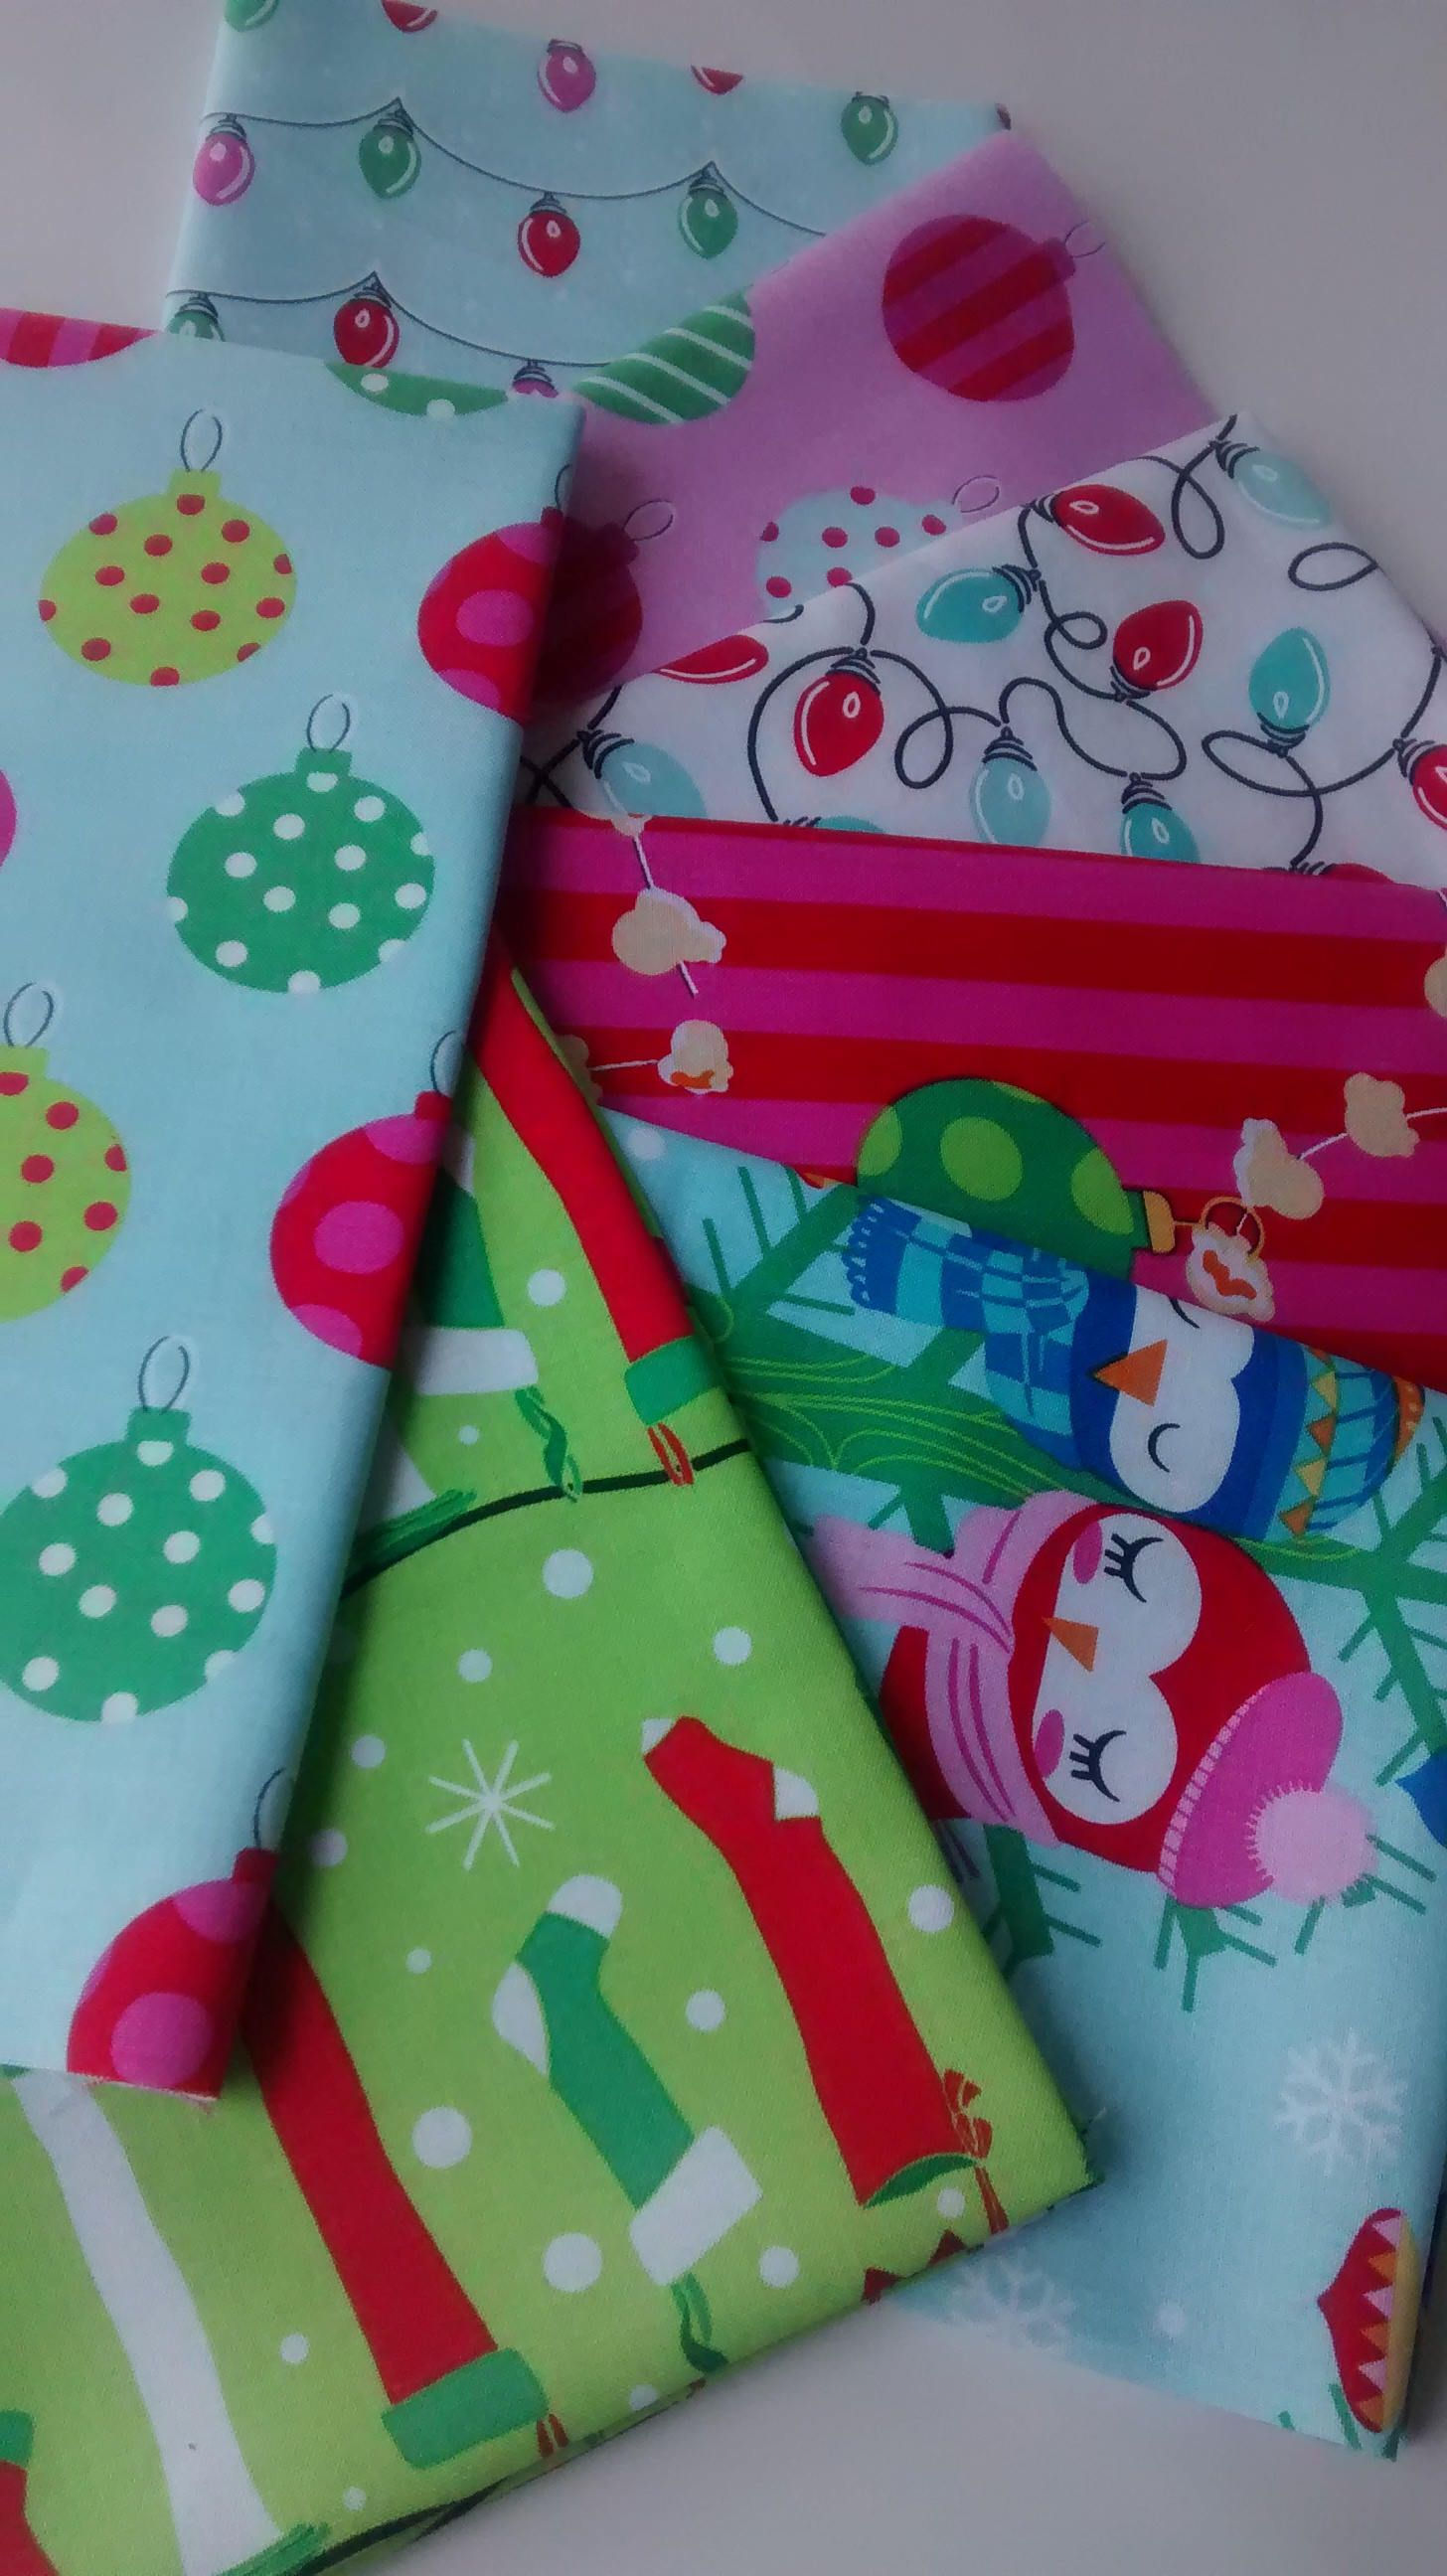 Pin on Holiday Fat Quarters Bundles